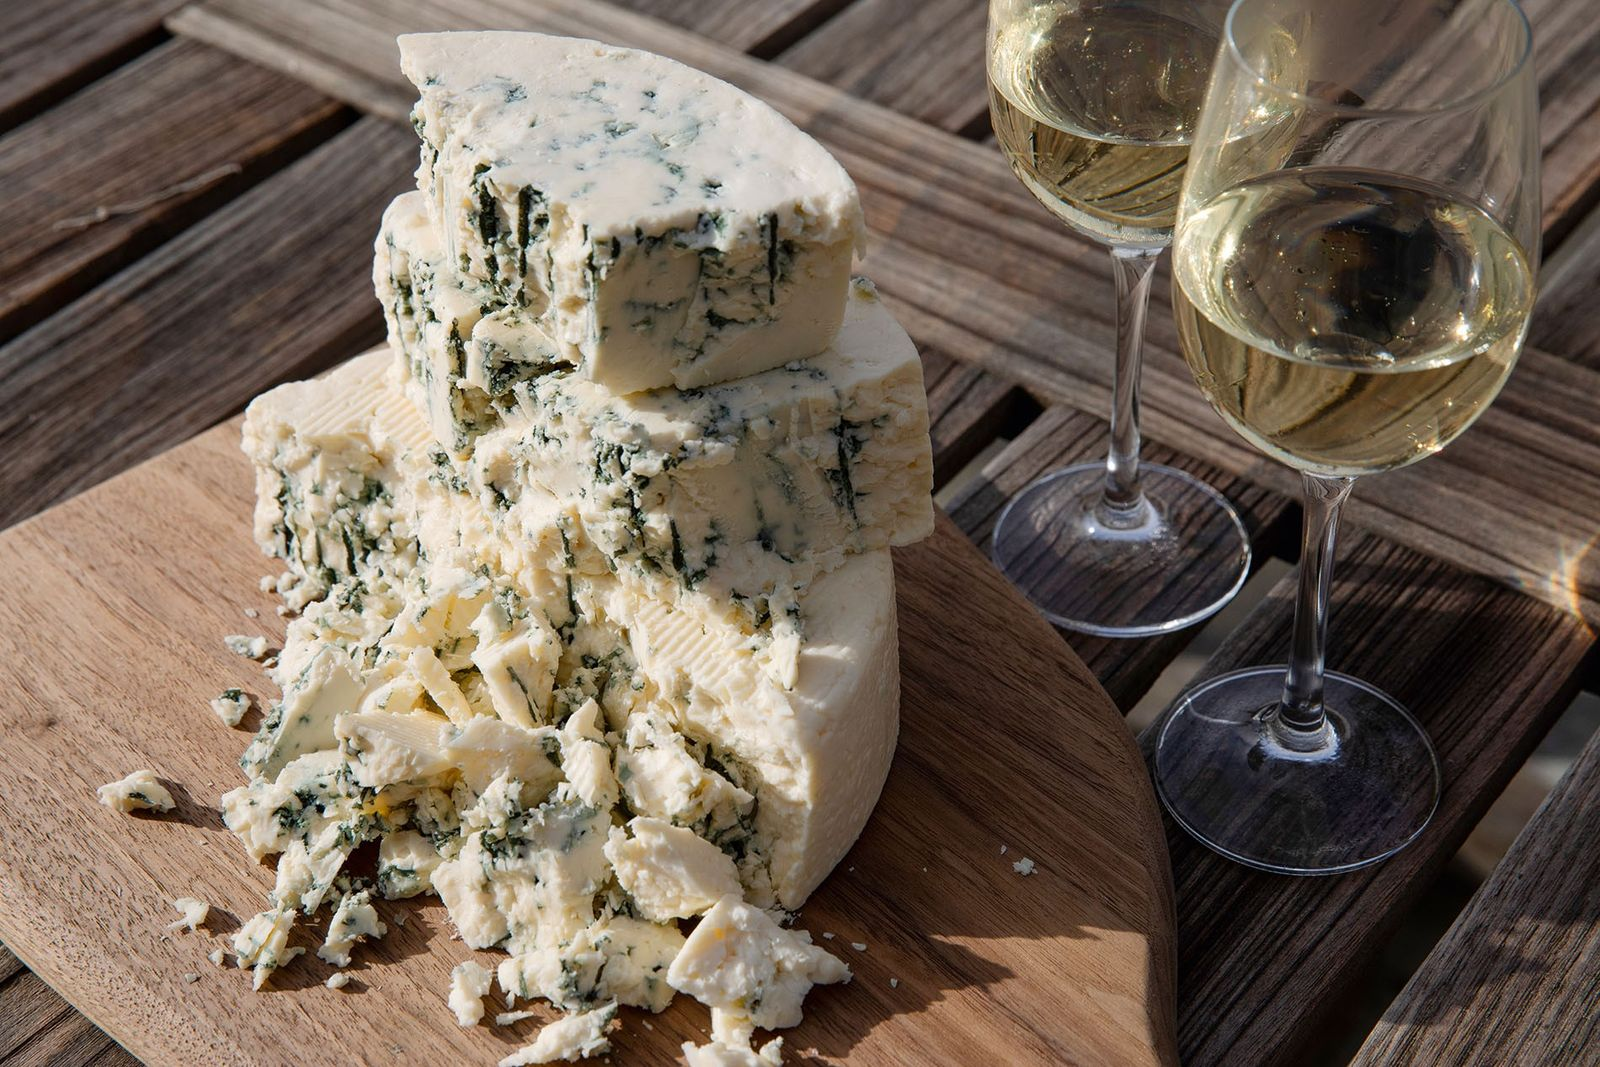 Beyond Napa: on the trail of California's artisan cheesmakers